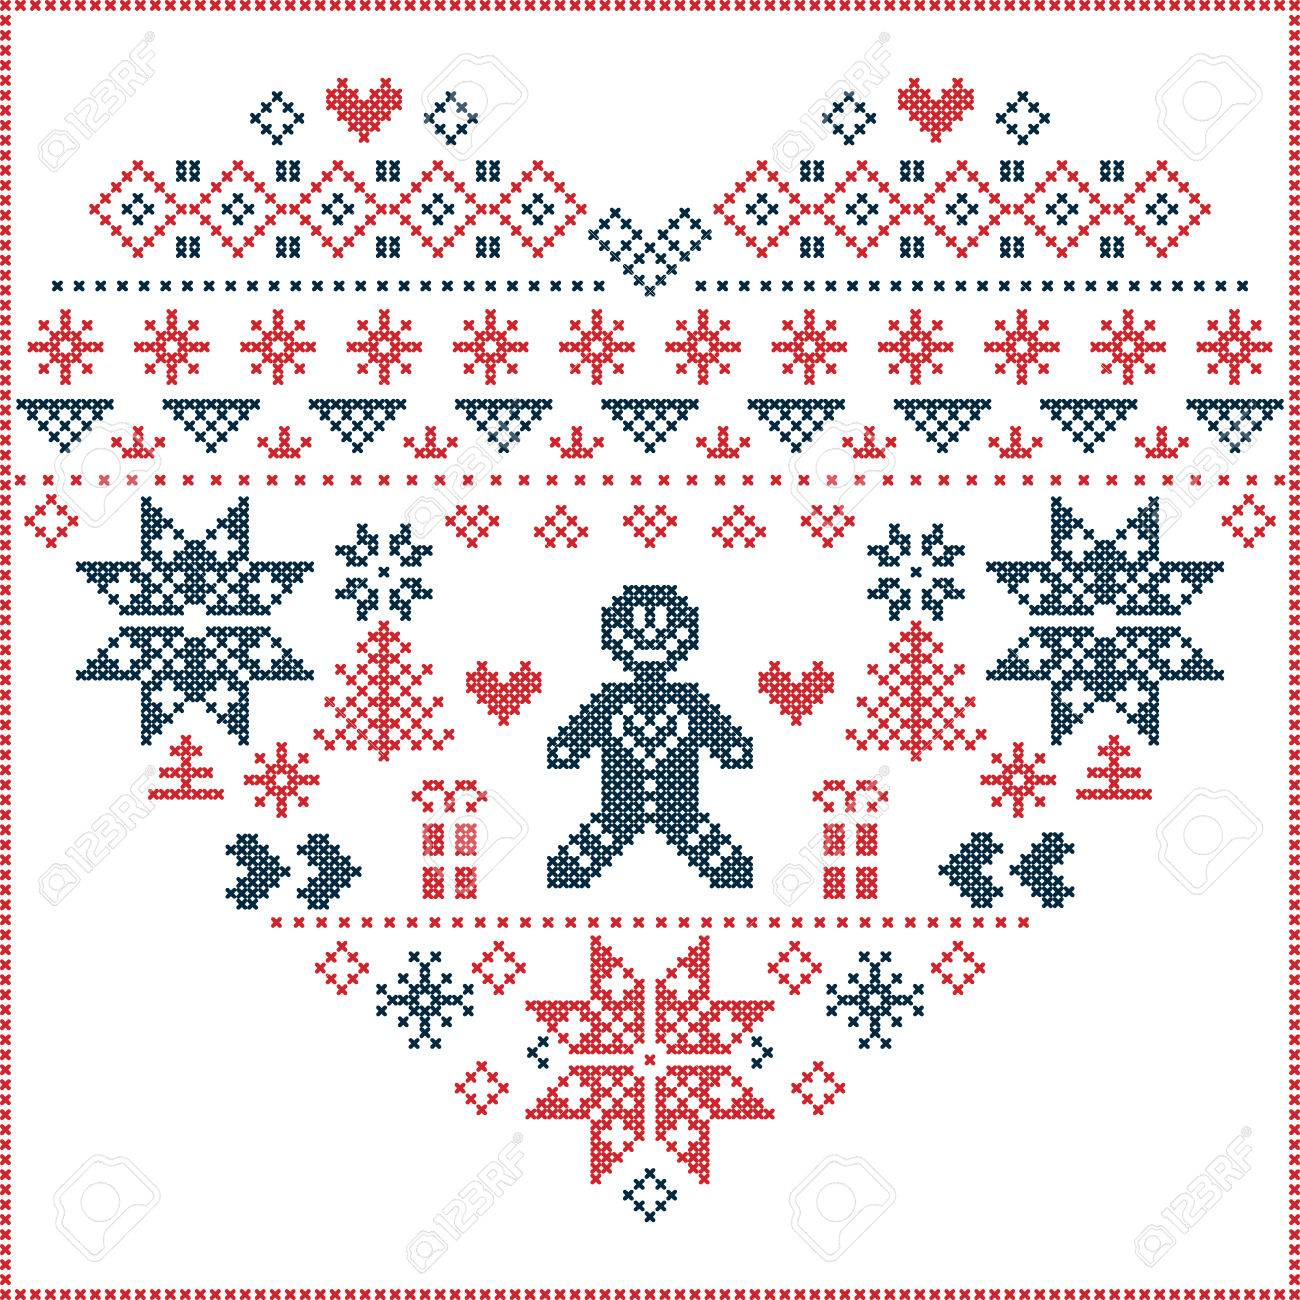 Heart Shape And Inspired By Norwegian Christmas And Festive ...